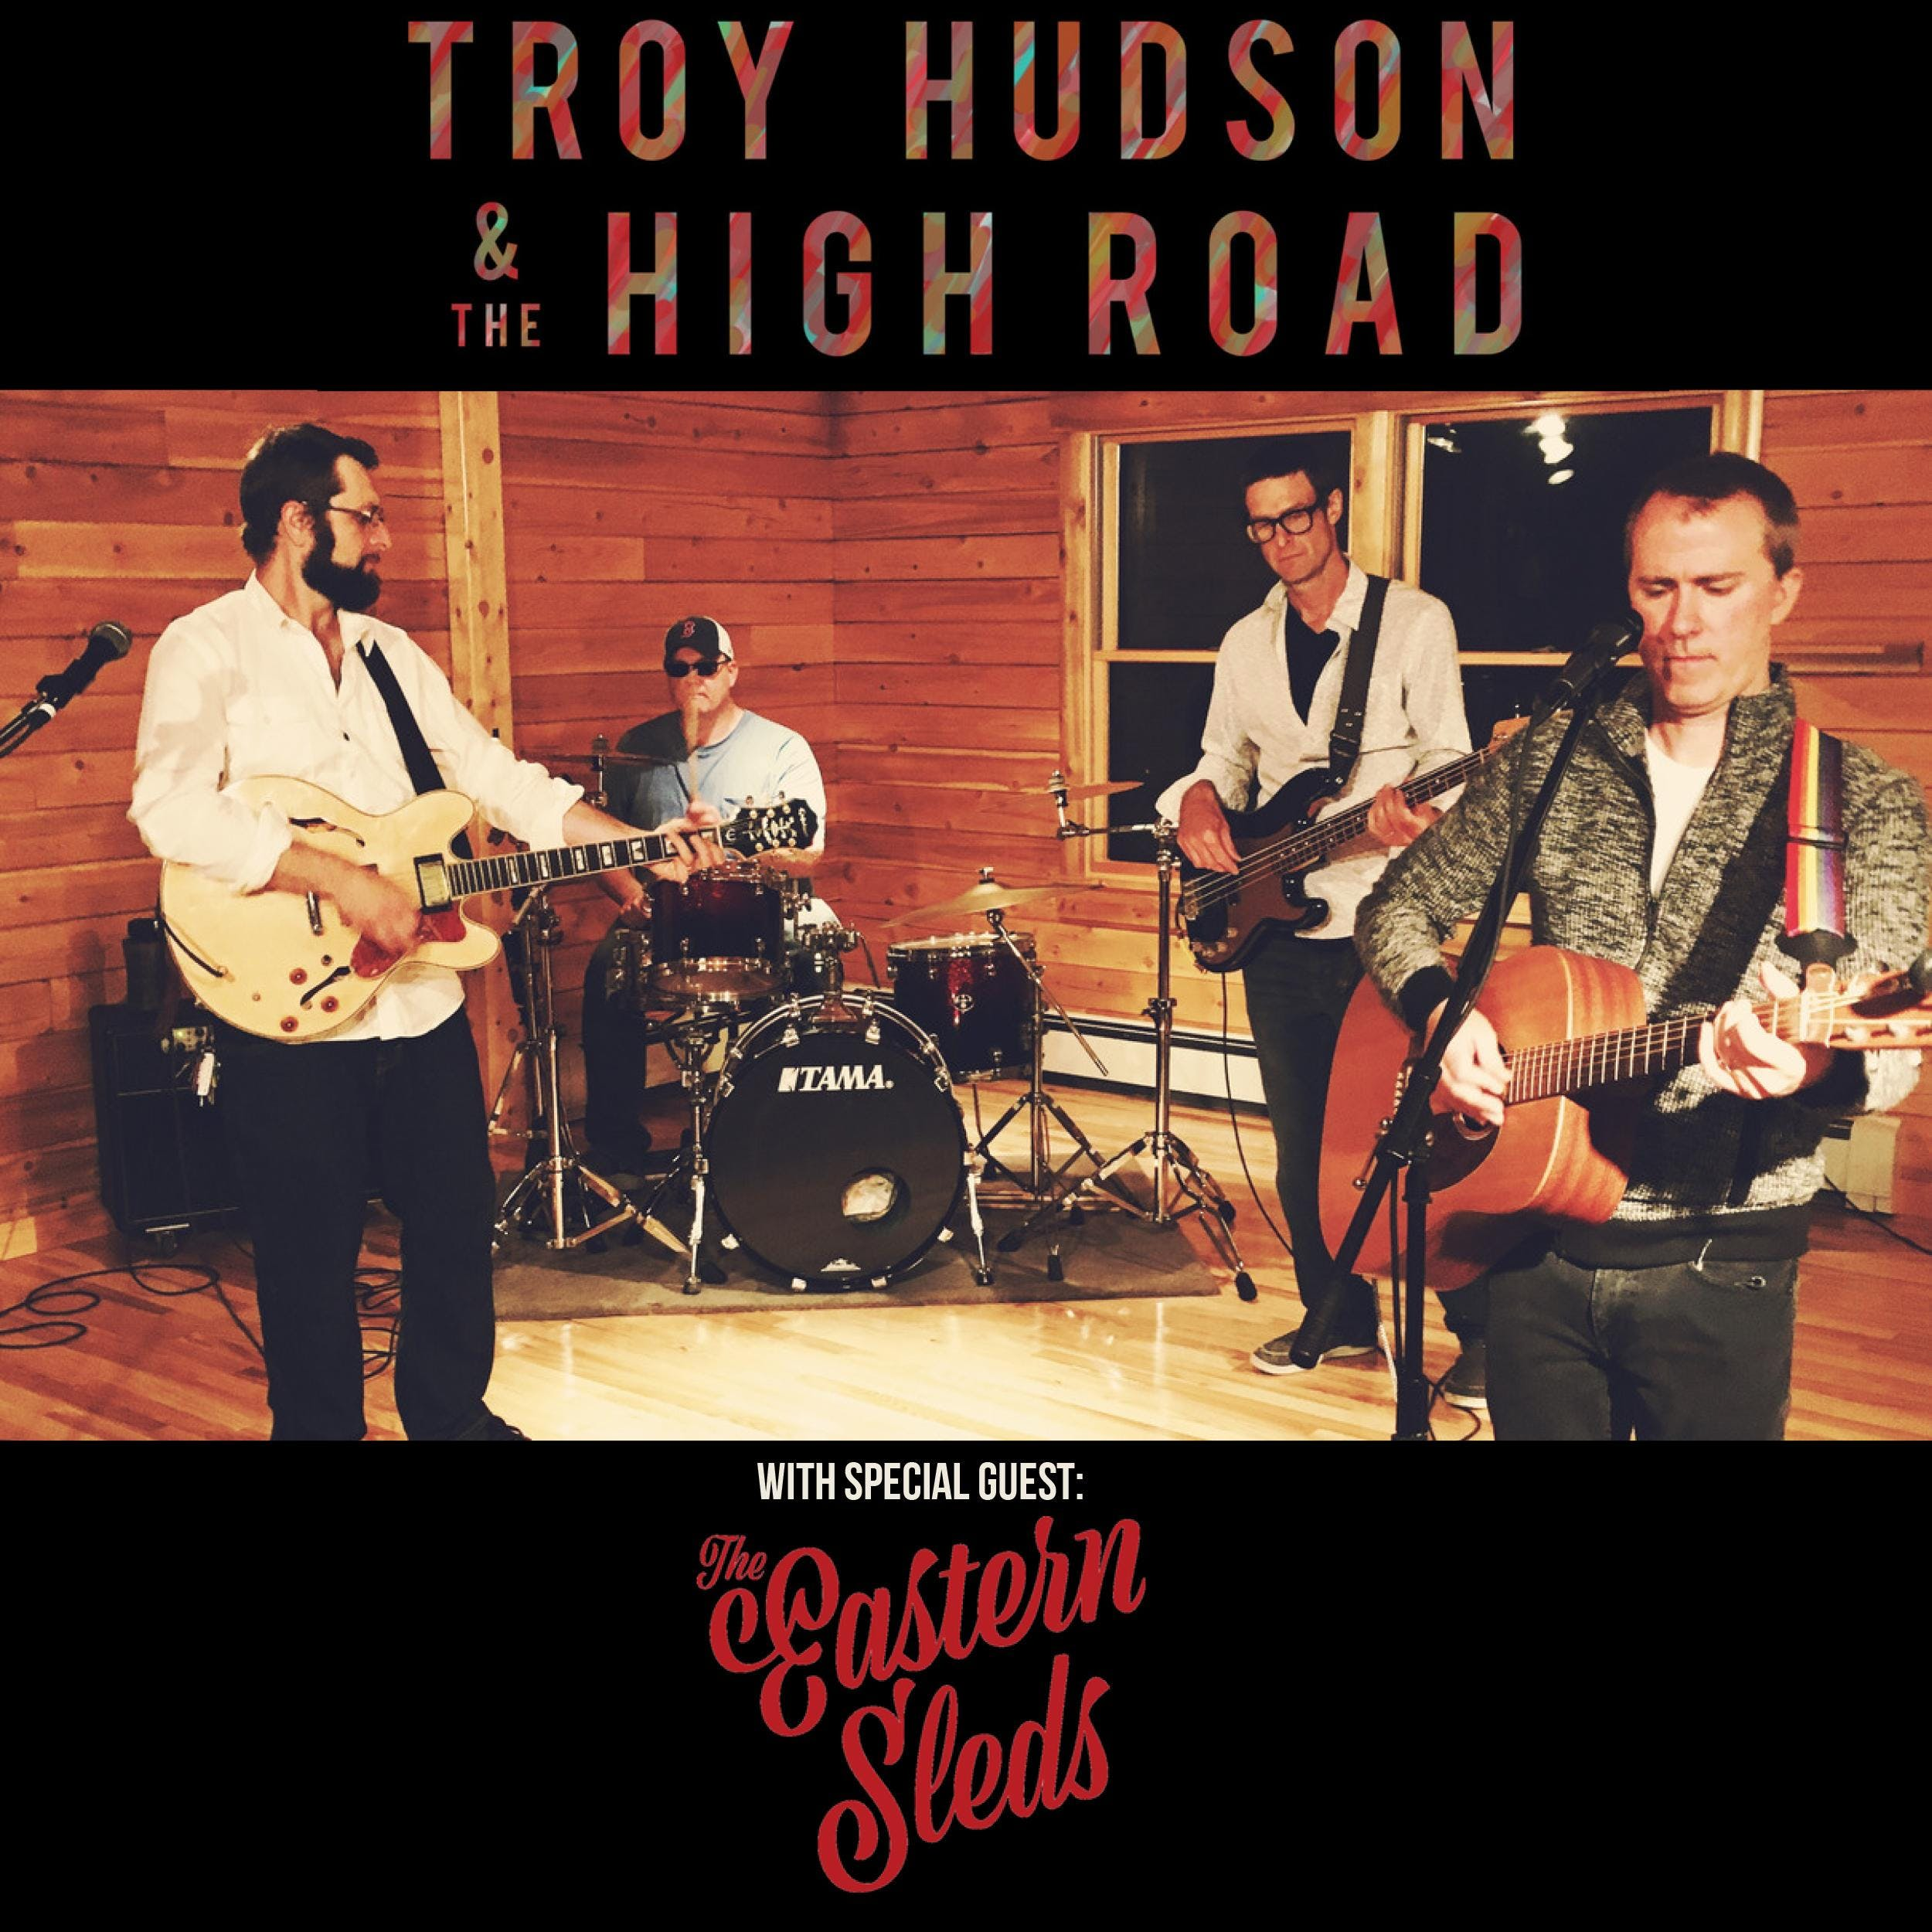 Troy Hudson and the High Road with special guests Eastern Sled